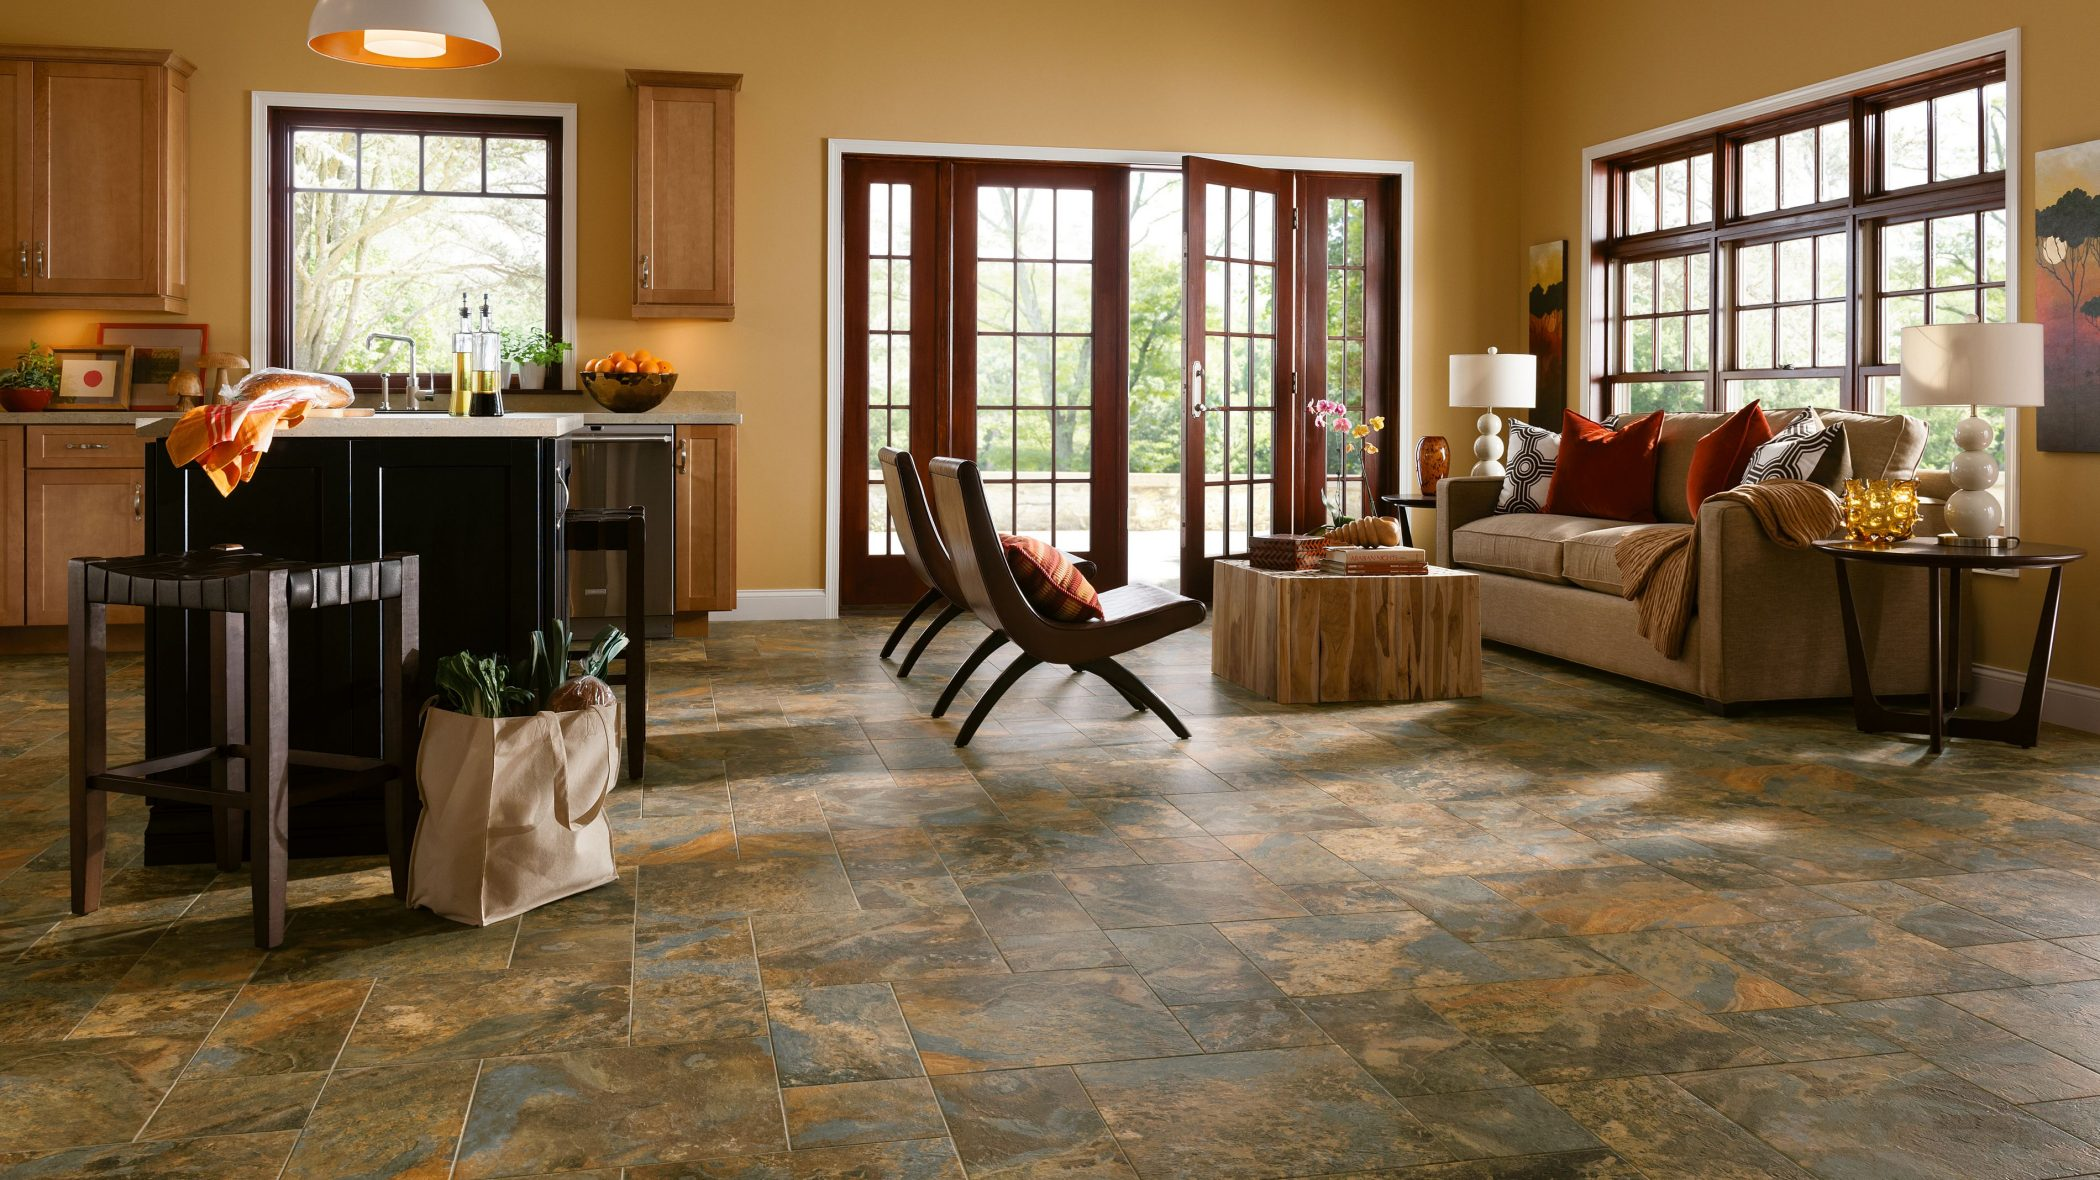 Design Tip #1 - For a truly high-end custom stone look, consider this classic 3-way opus pattern.